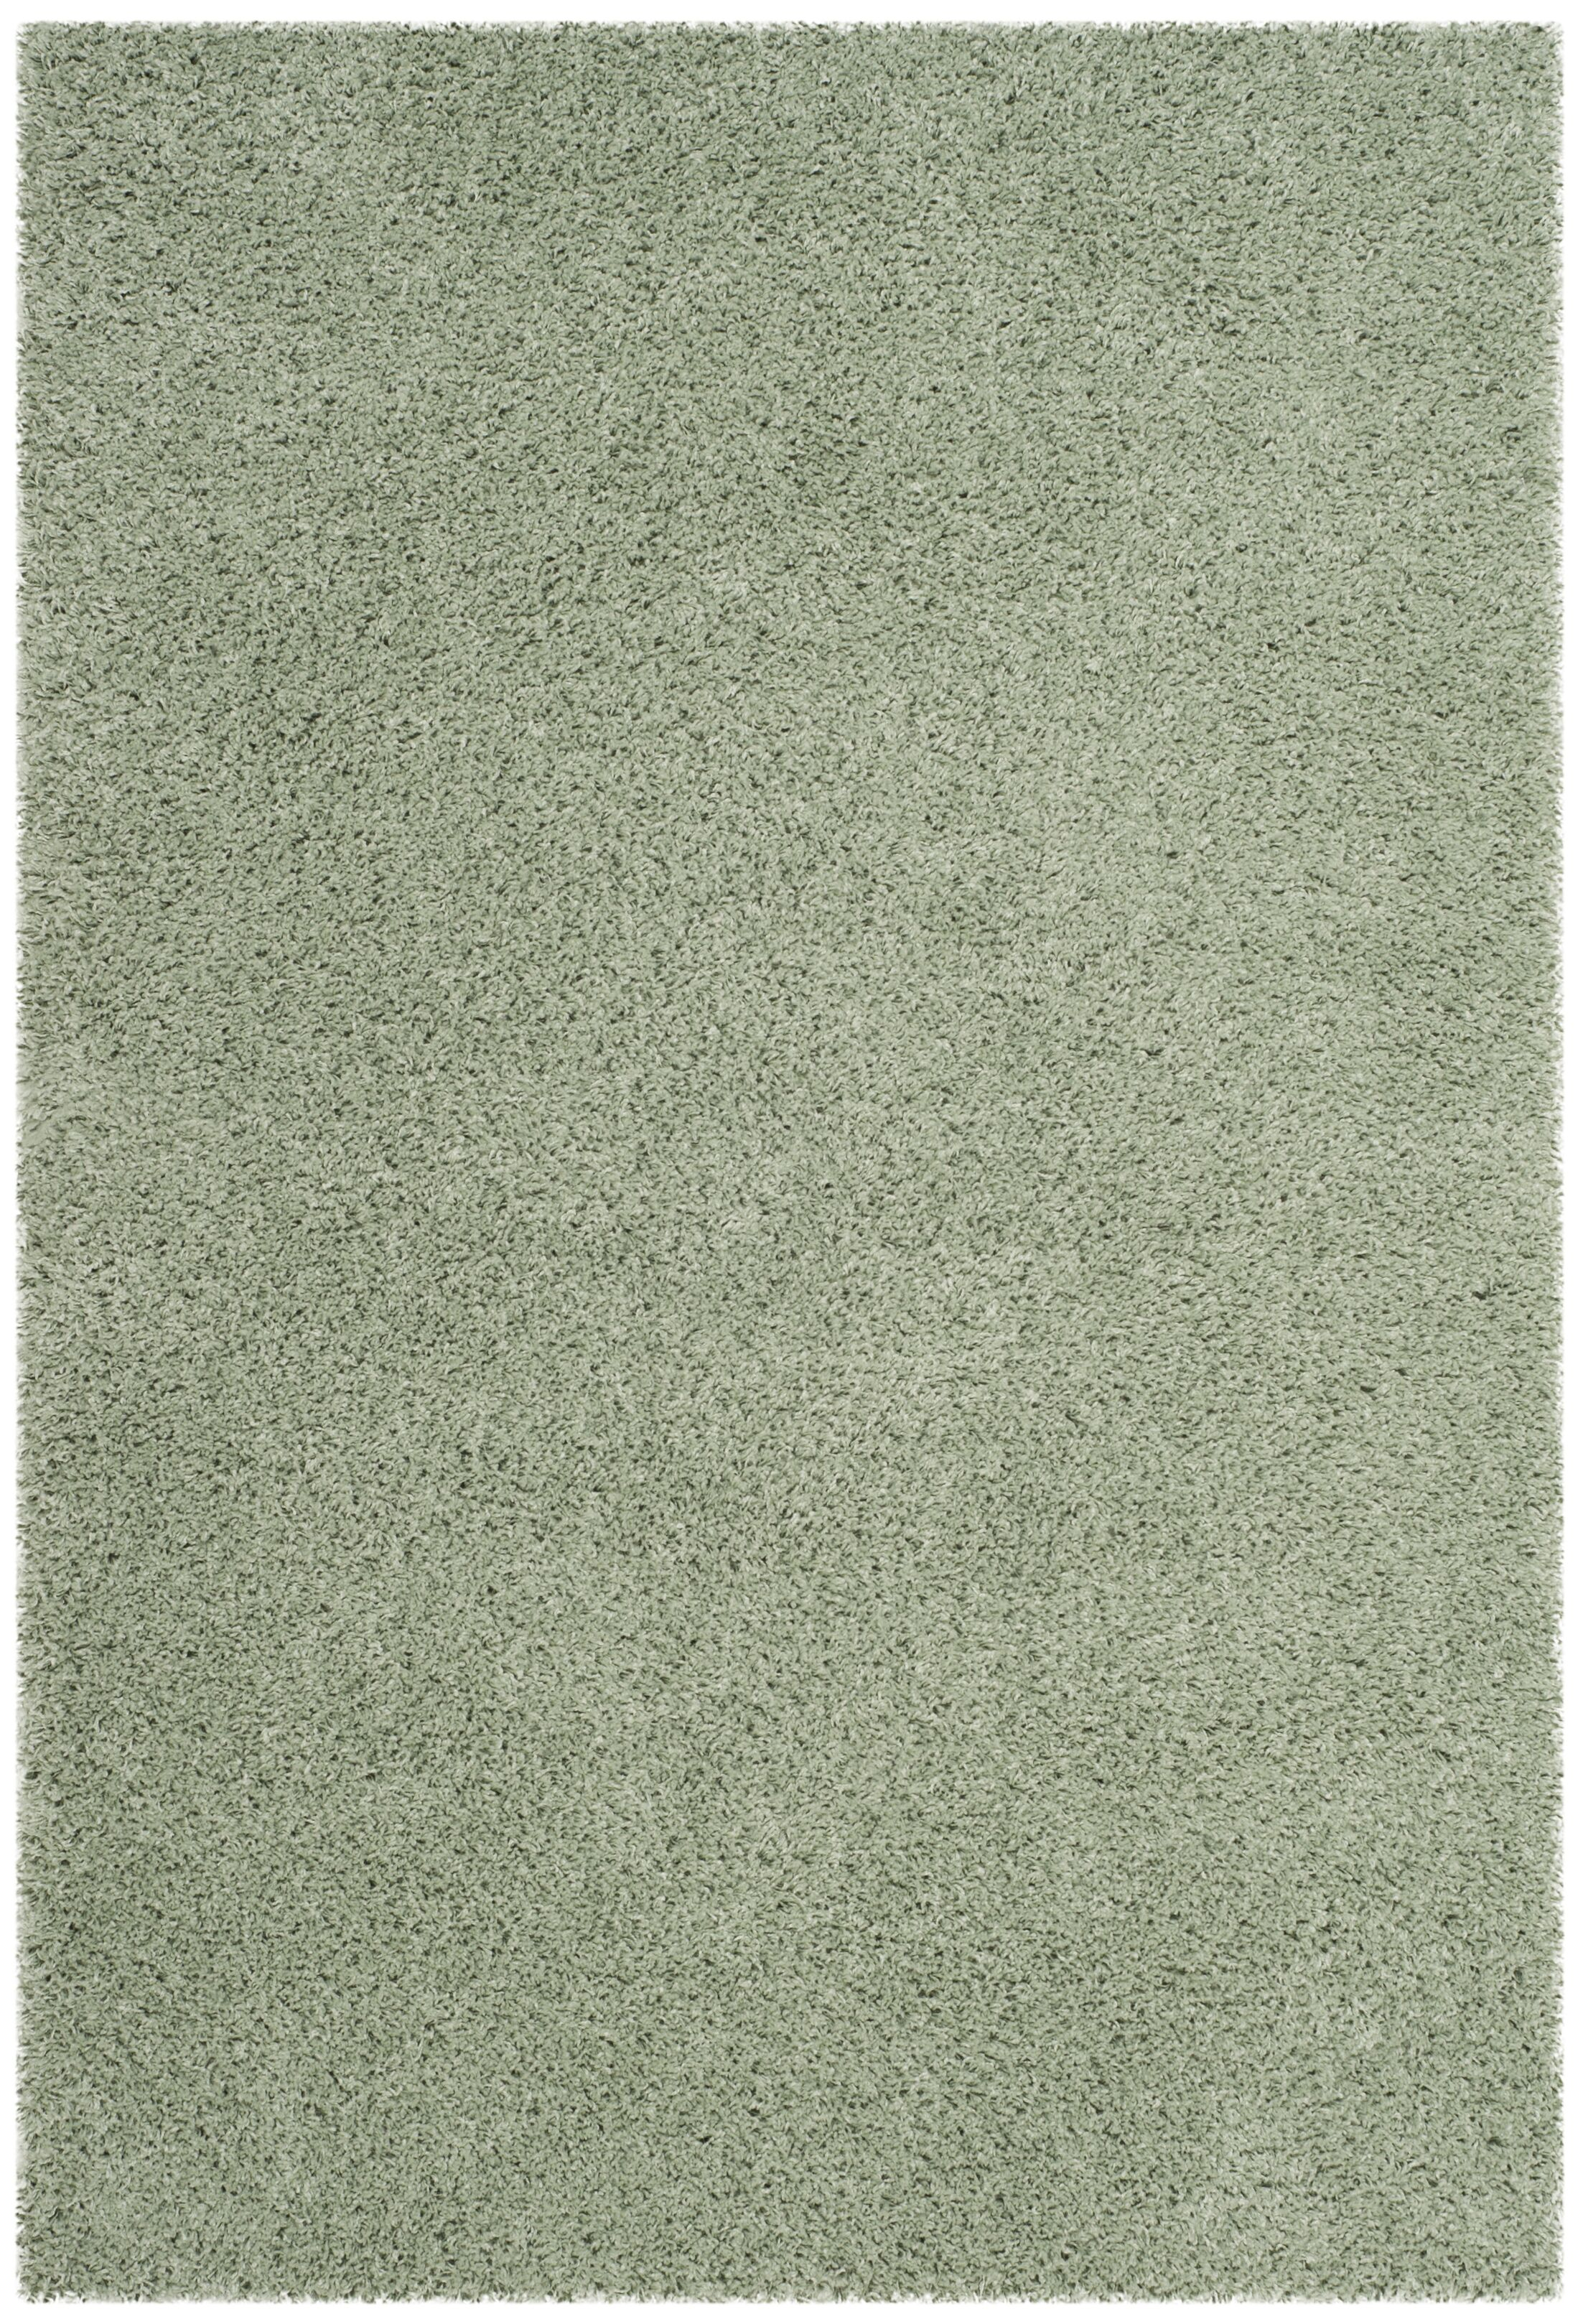 Combs Green Area Rug Rug Size: Rectangle 4' x 6'